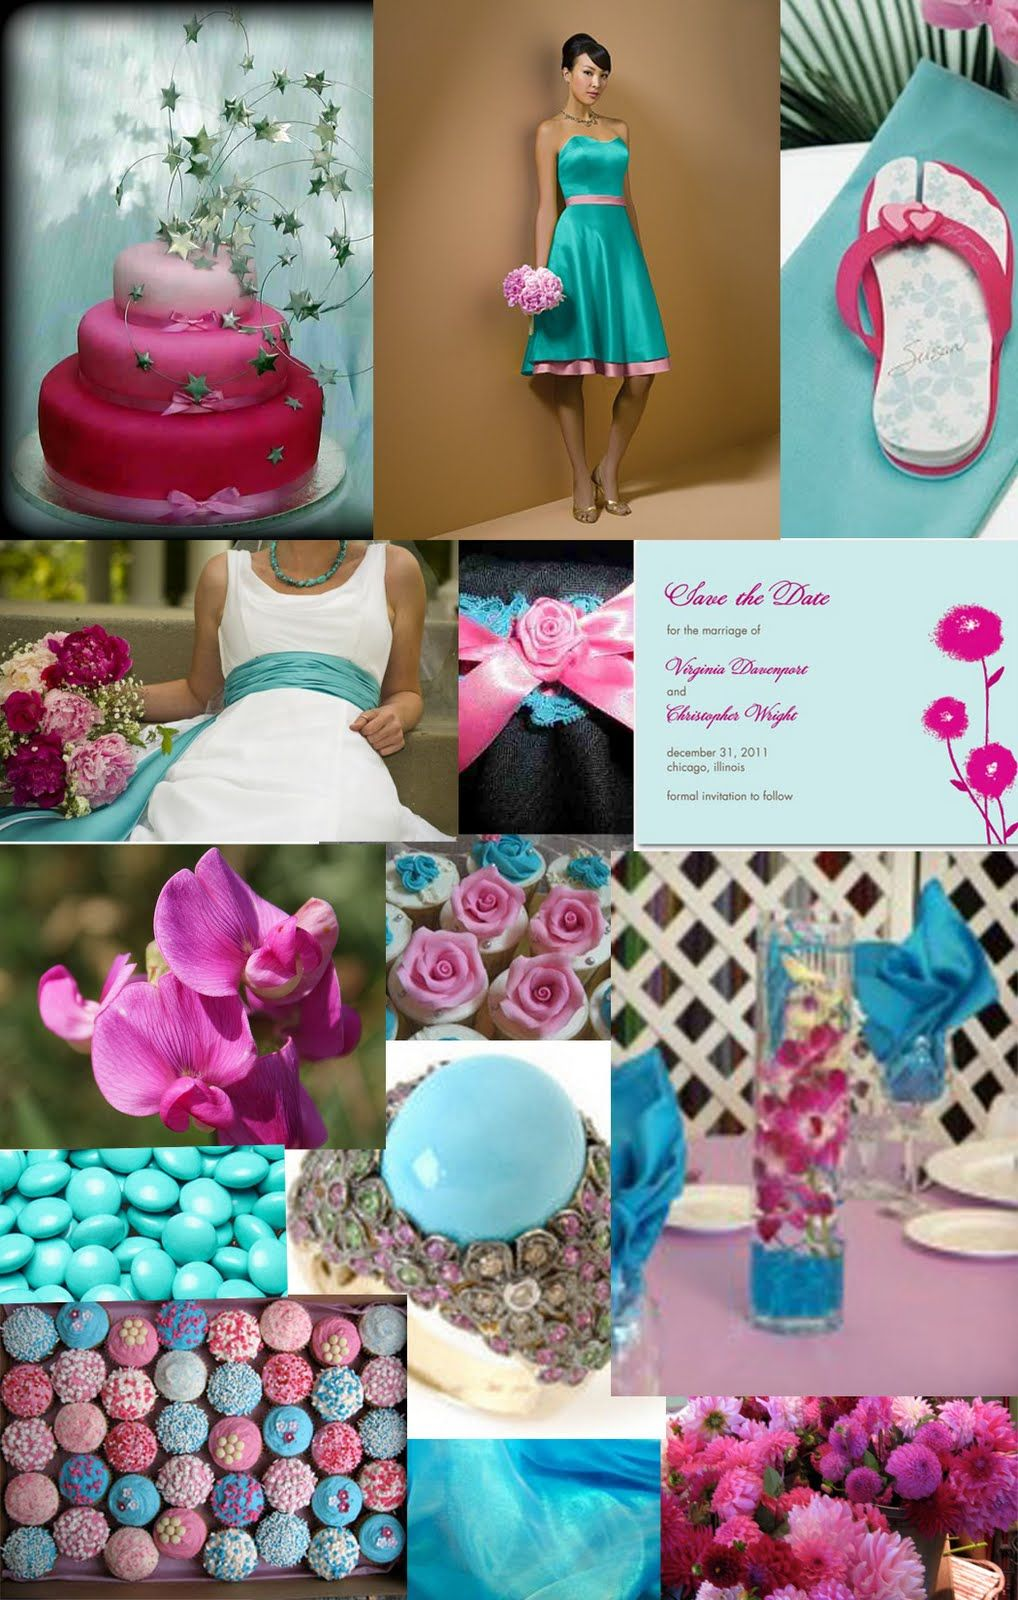 Pink Purple And Blue Wedding Posted By Rose Giffen Weddingzilla At 9 02 Pm Email This Blogthis